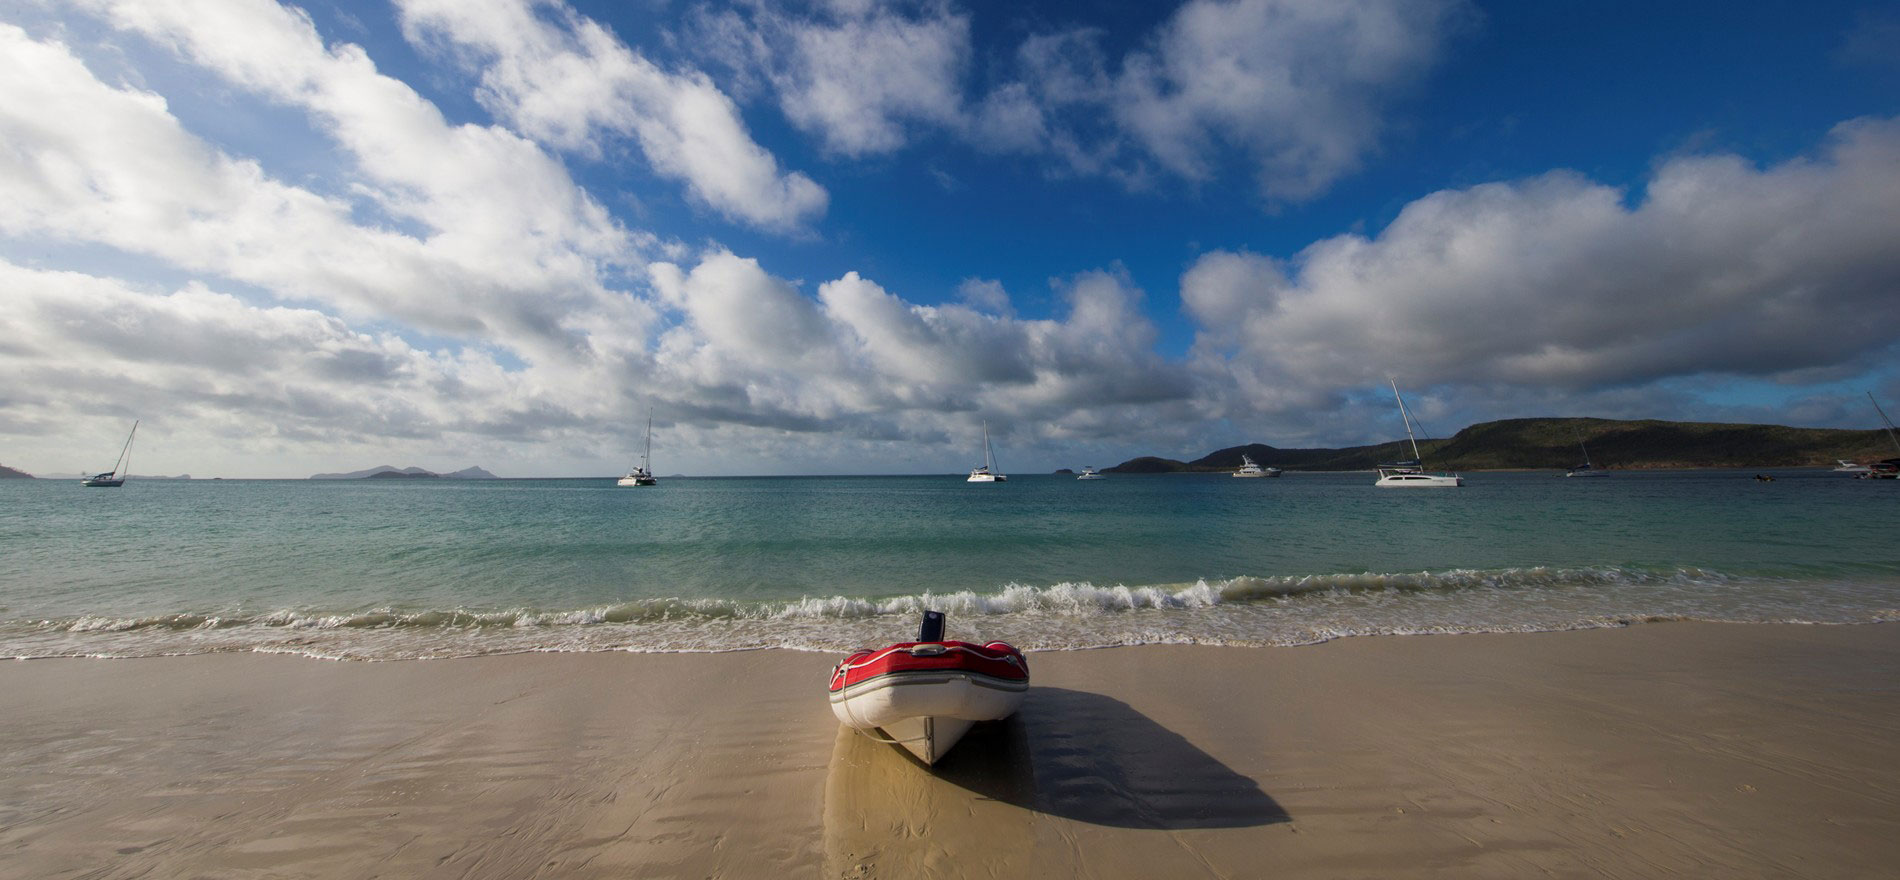 Travel to the Whitsunday Islands